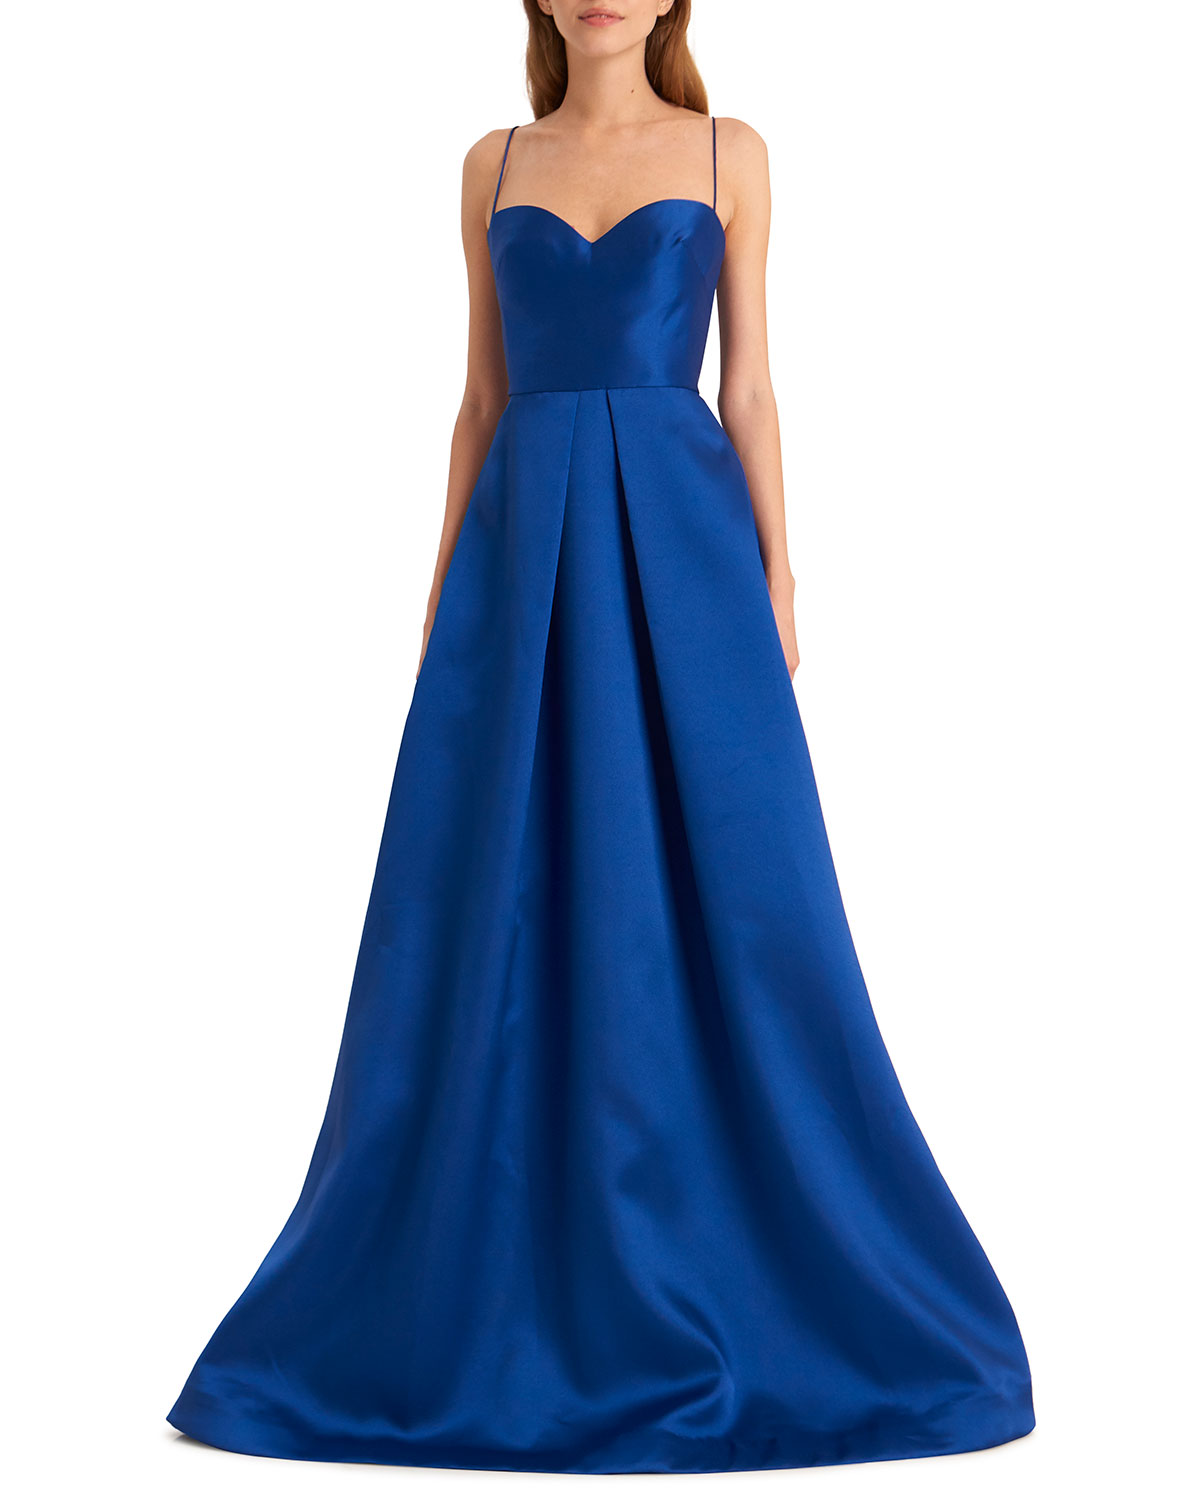 Sapphire Sweetheart Spaghetti-Strap Gown with Full Skirt